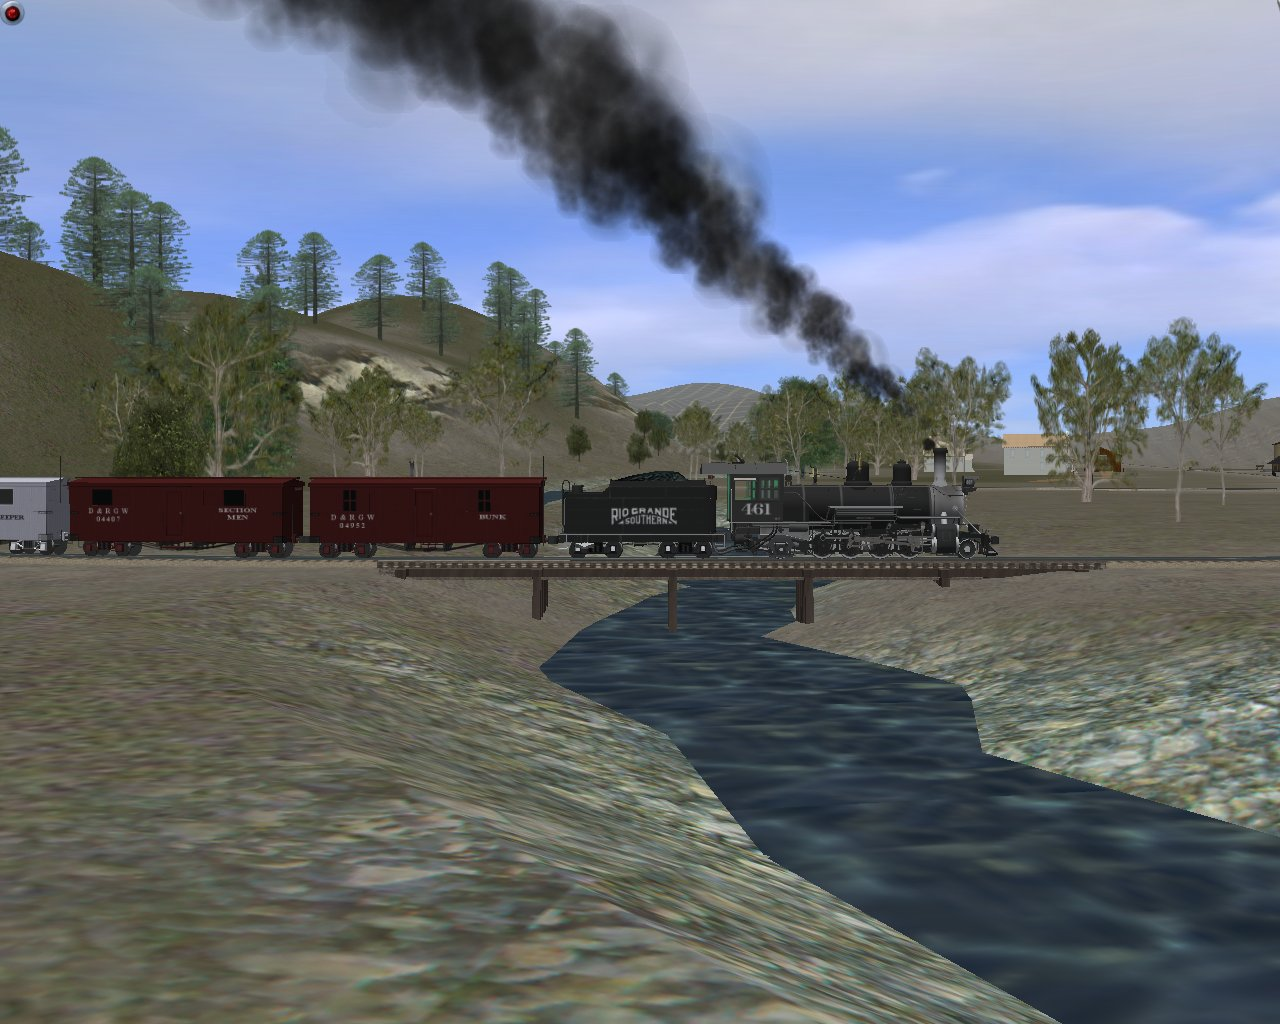 Screenshots Ridgway To Durango